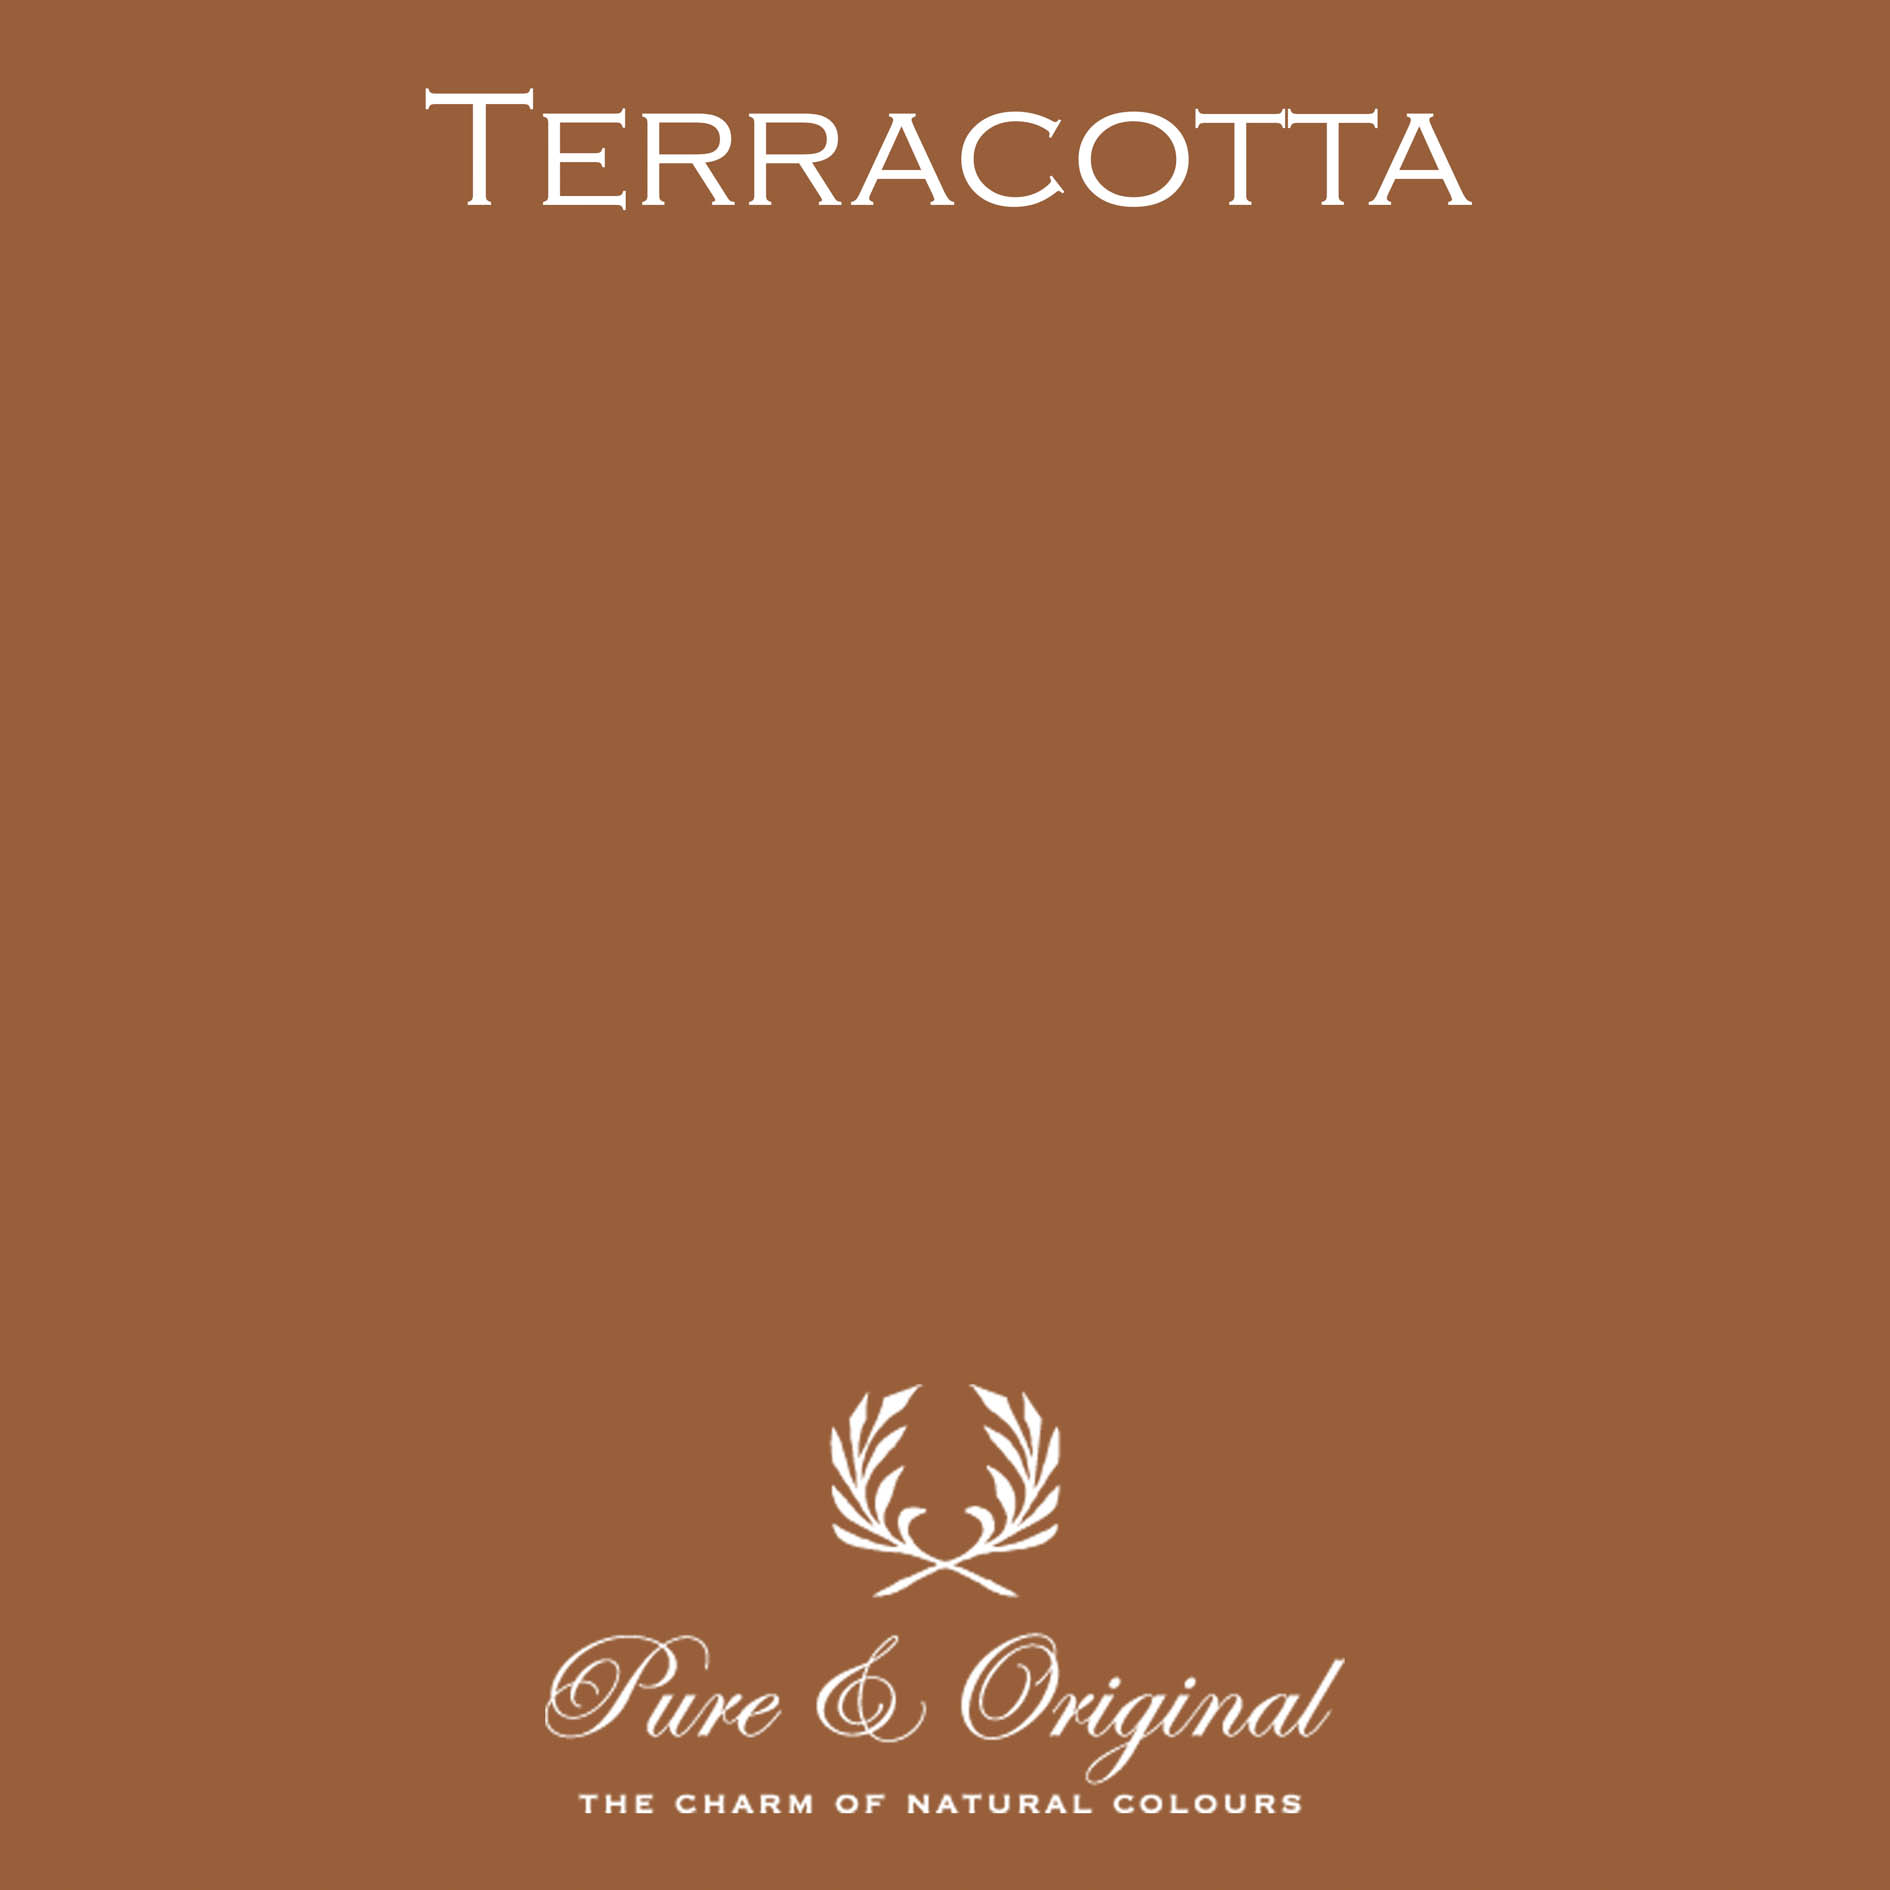 Pure & Original Terracotta